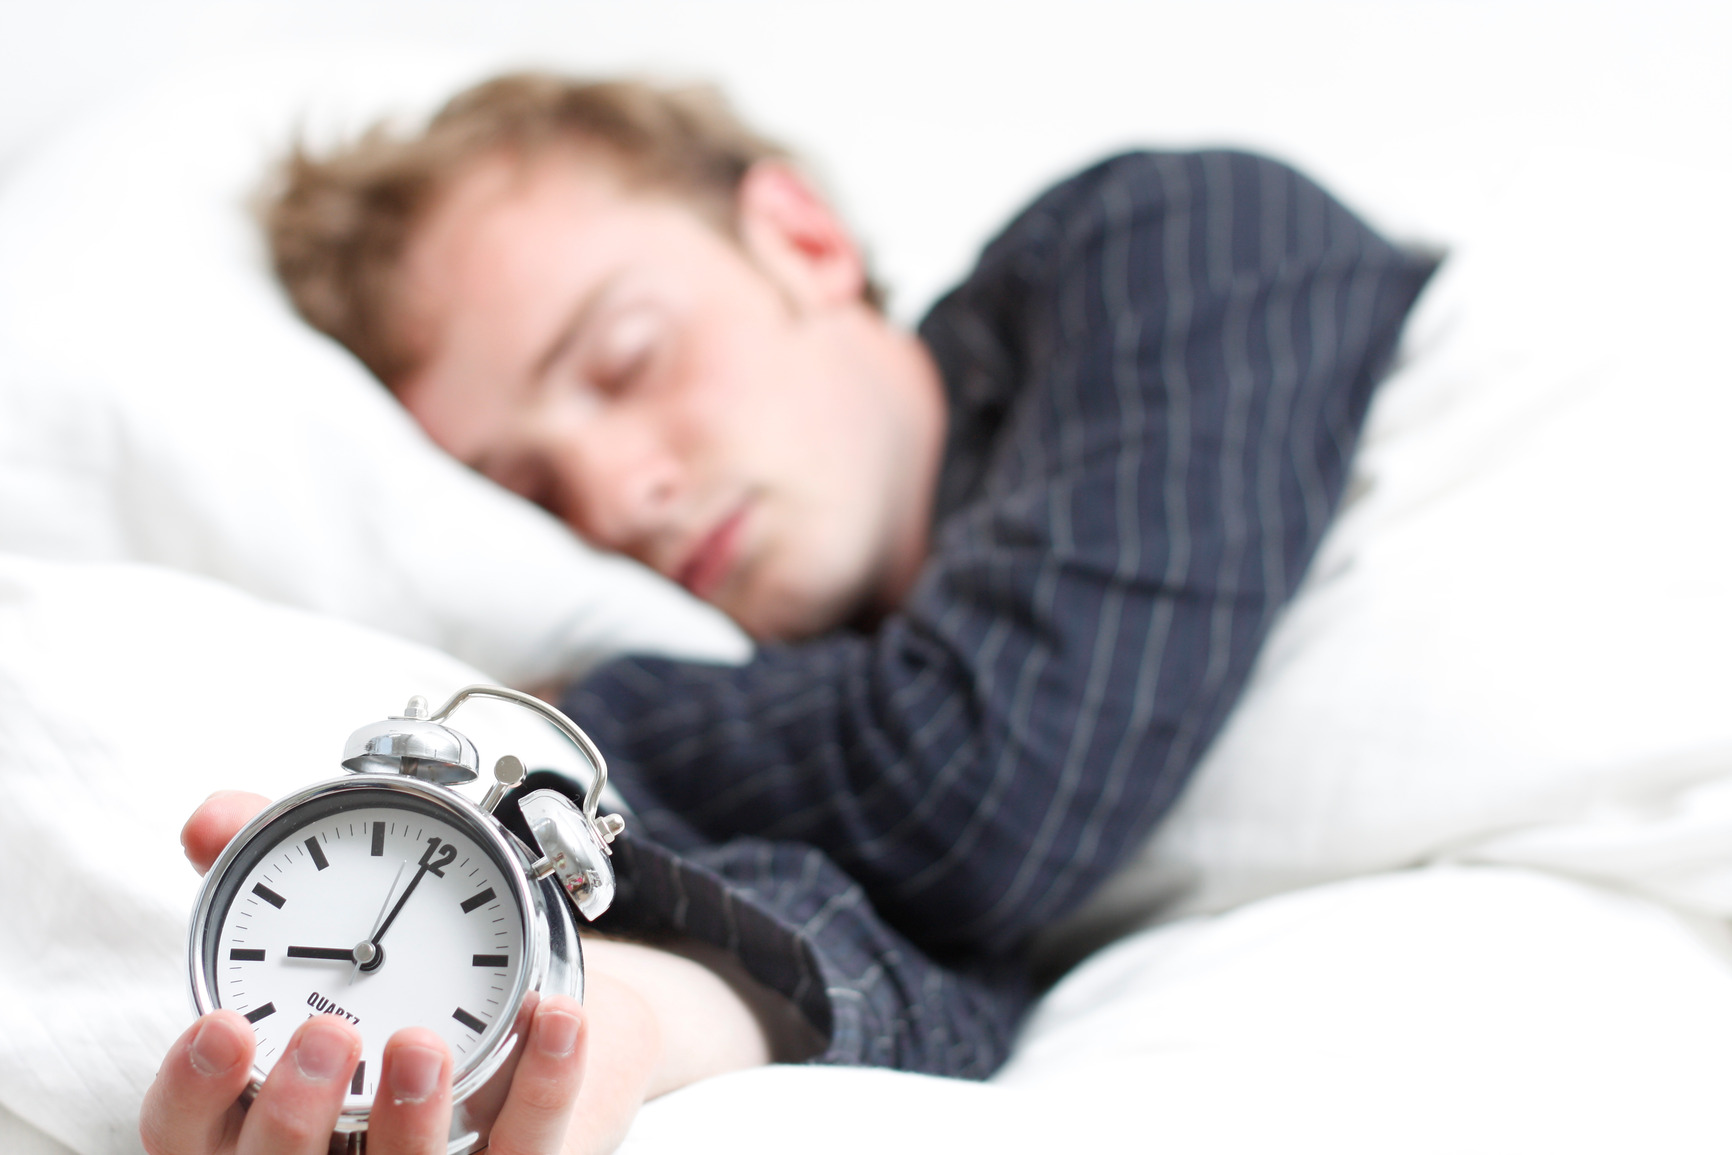 8-Hour Sleepers Less Likely to have Heart Problems